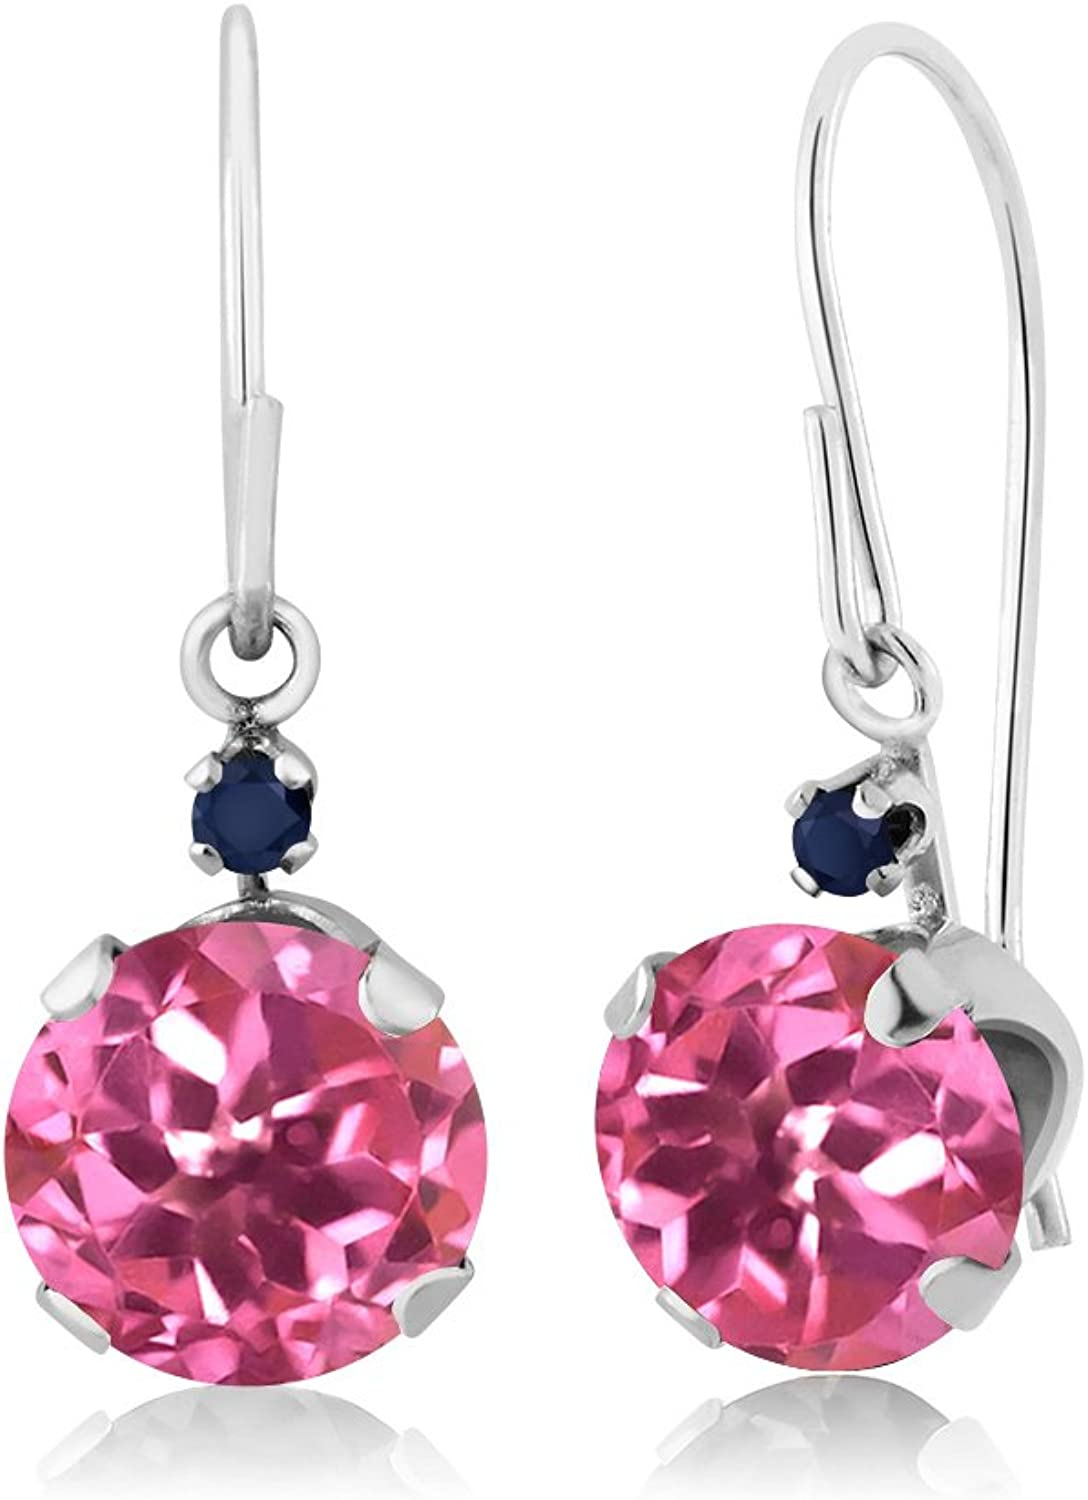 2.04 Ct Round Pink Mystic Topaz bluee Sapphire 14K White gold Earrings